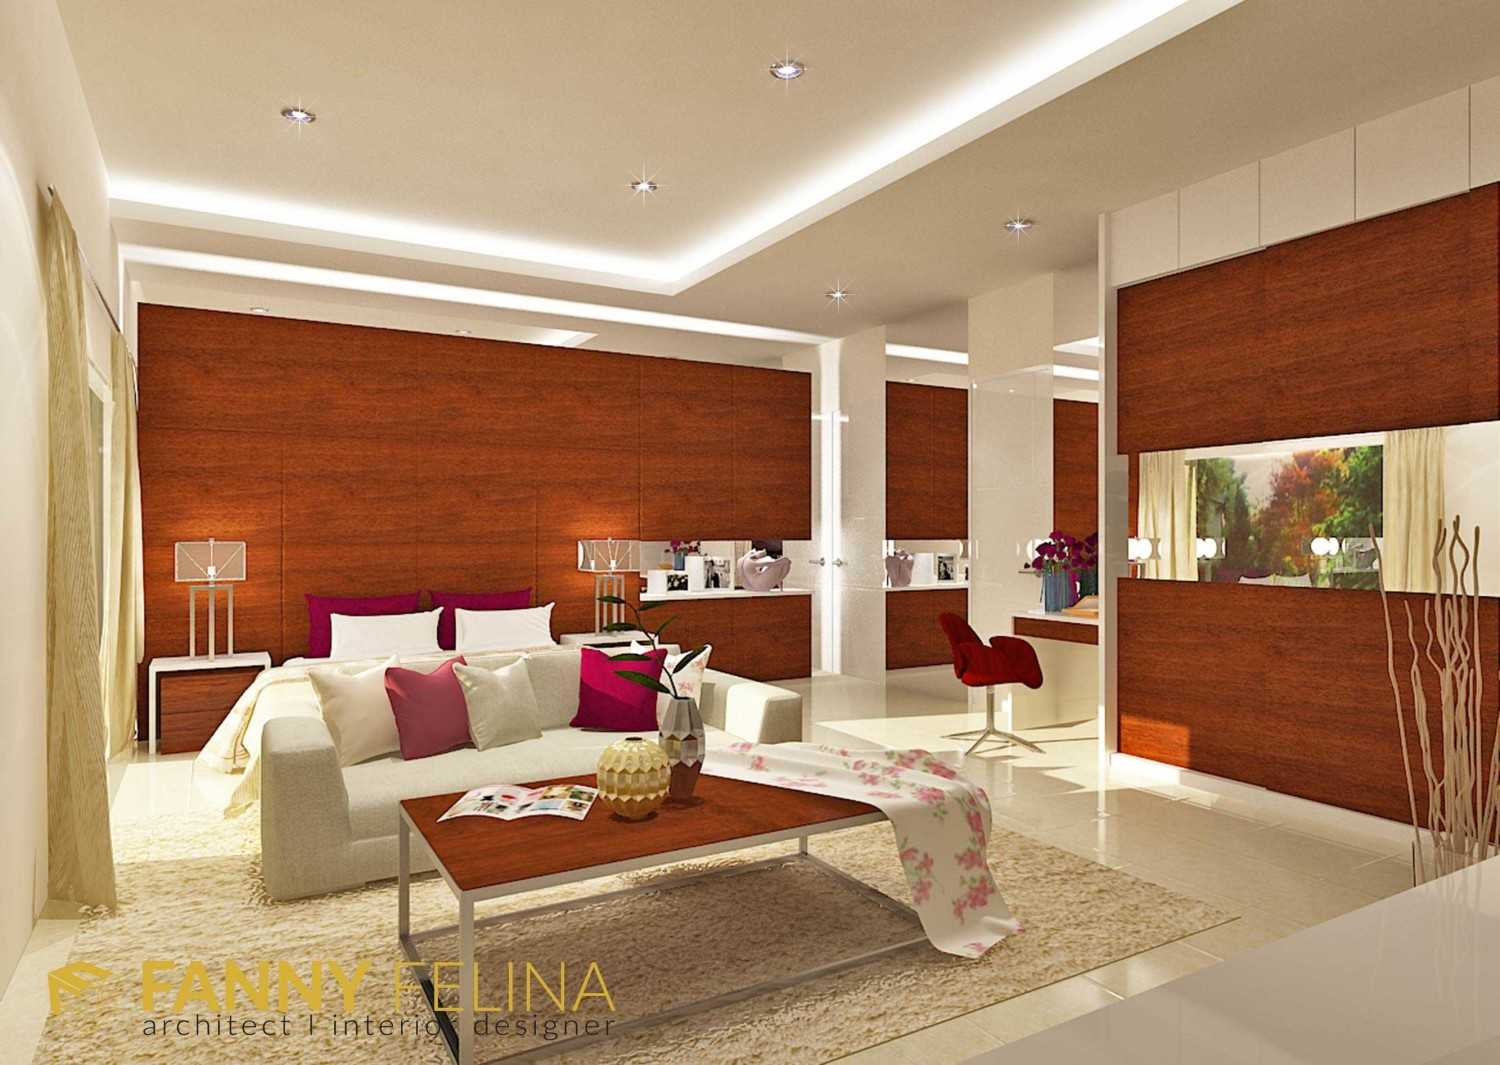 Fanny Felina Architecture & Interior Design Hercules House Surabaya, Surabaya City, East Java, Indonesia Surabaya, Surabaya City, East Java, Indonesia 02 Modern 34575